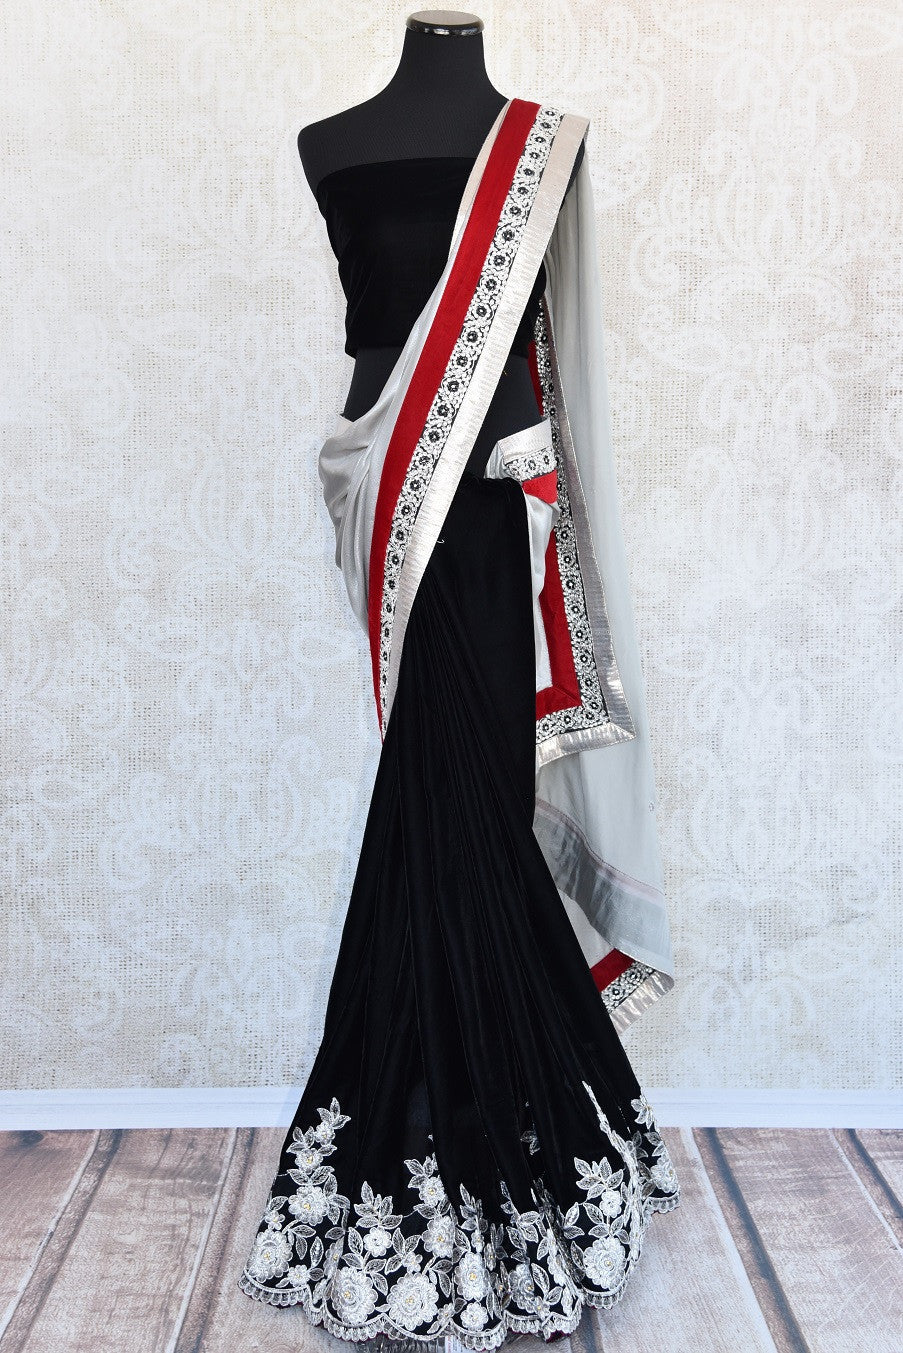 90A885 Black velvet saree with red and white border trims. This beautiful party wear saree is a must-have in your Indian clothing collection. The saree has floral design at the bottom and is available online in USA at Pure Elegance.